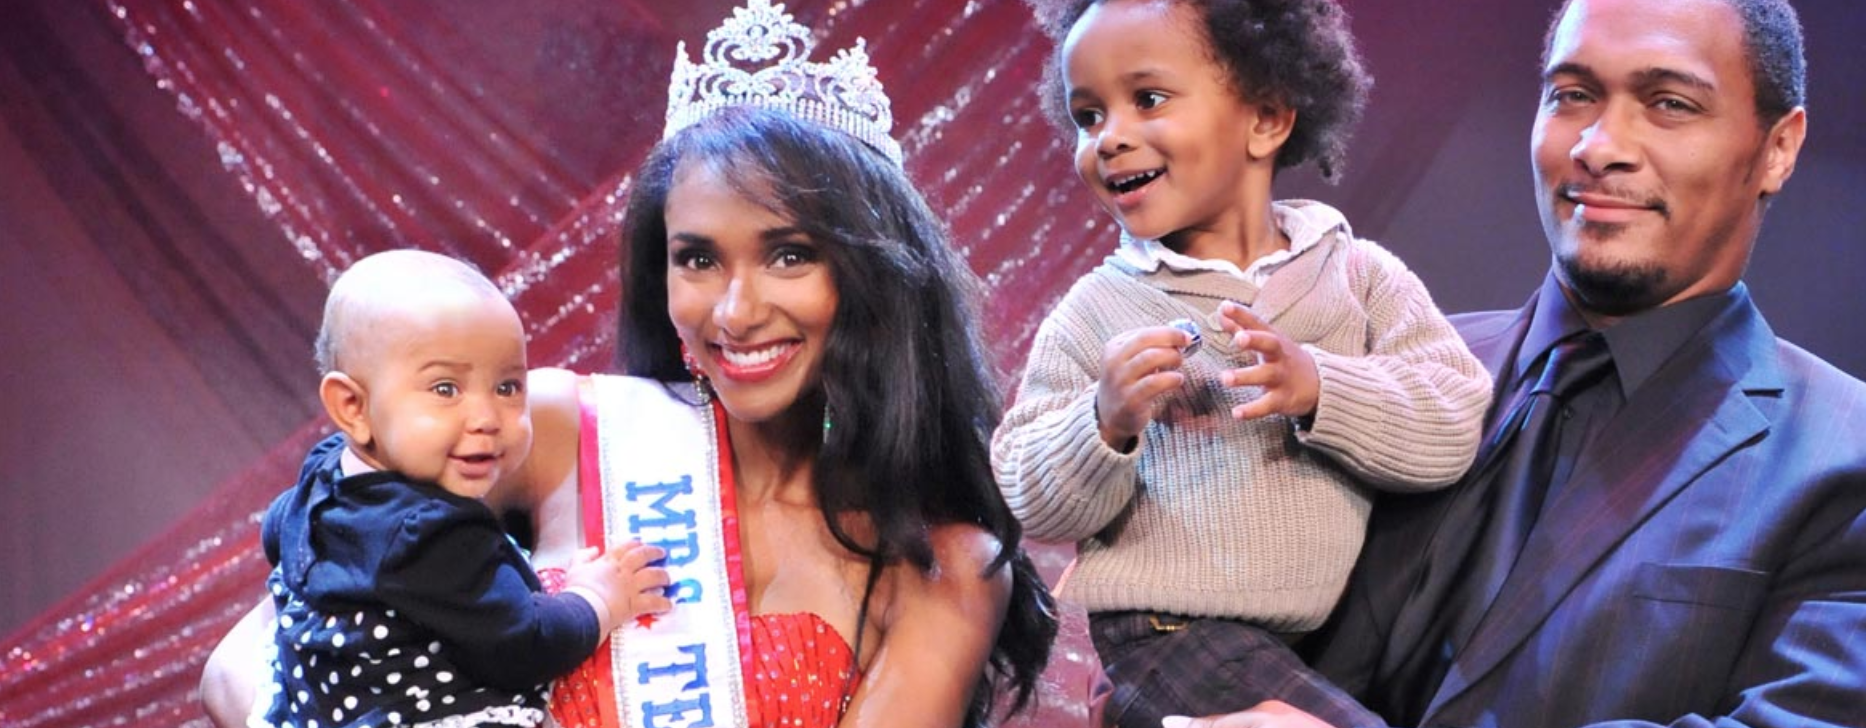 Austen Williams (Mrs. America 2014) began modeling and acting when she was 5. She has been a very successful performer for over 25 years. Her advice is priceless.